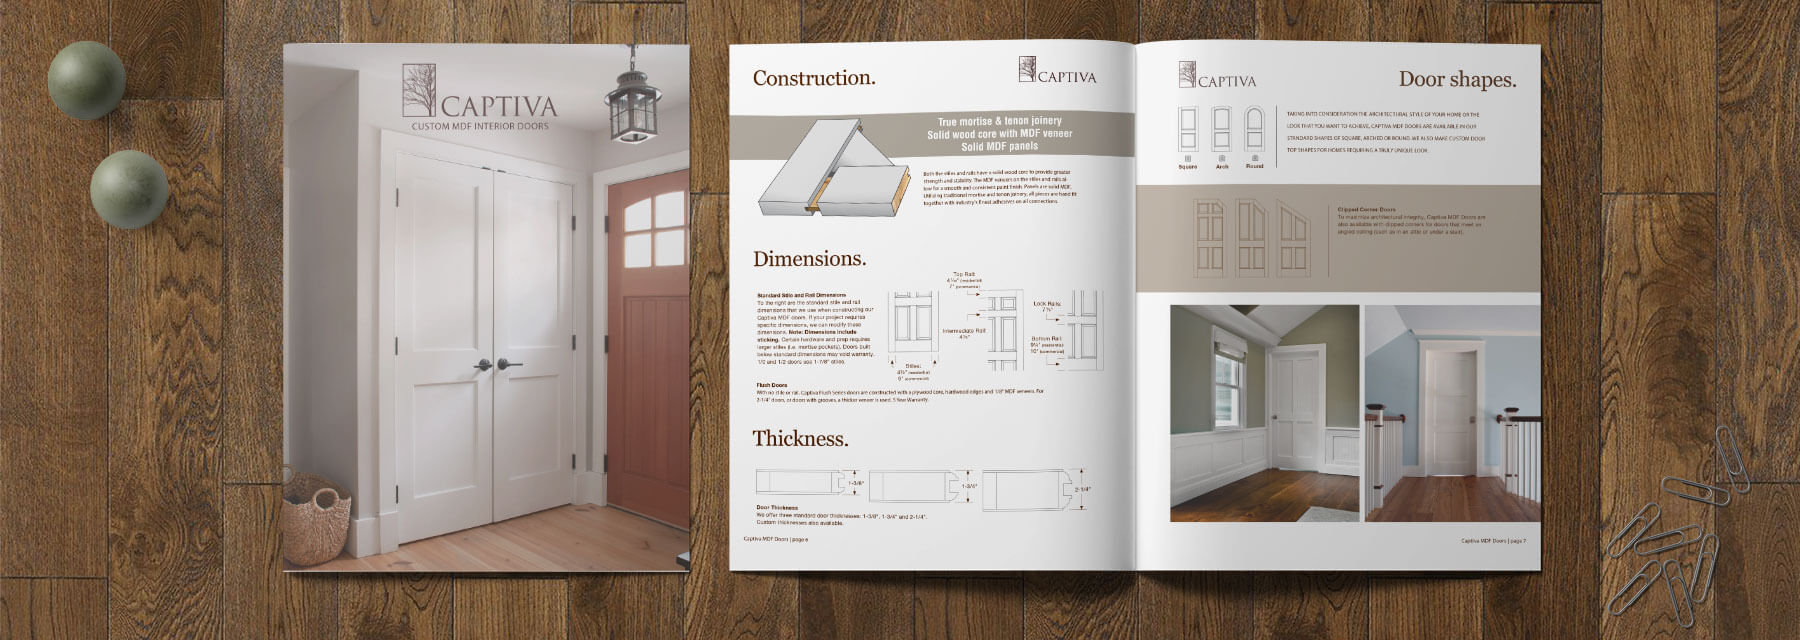 Captiva MDF Door Catalog